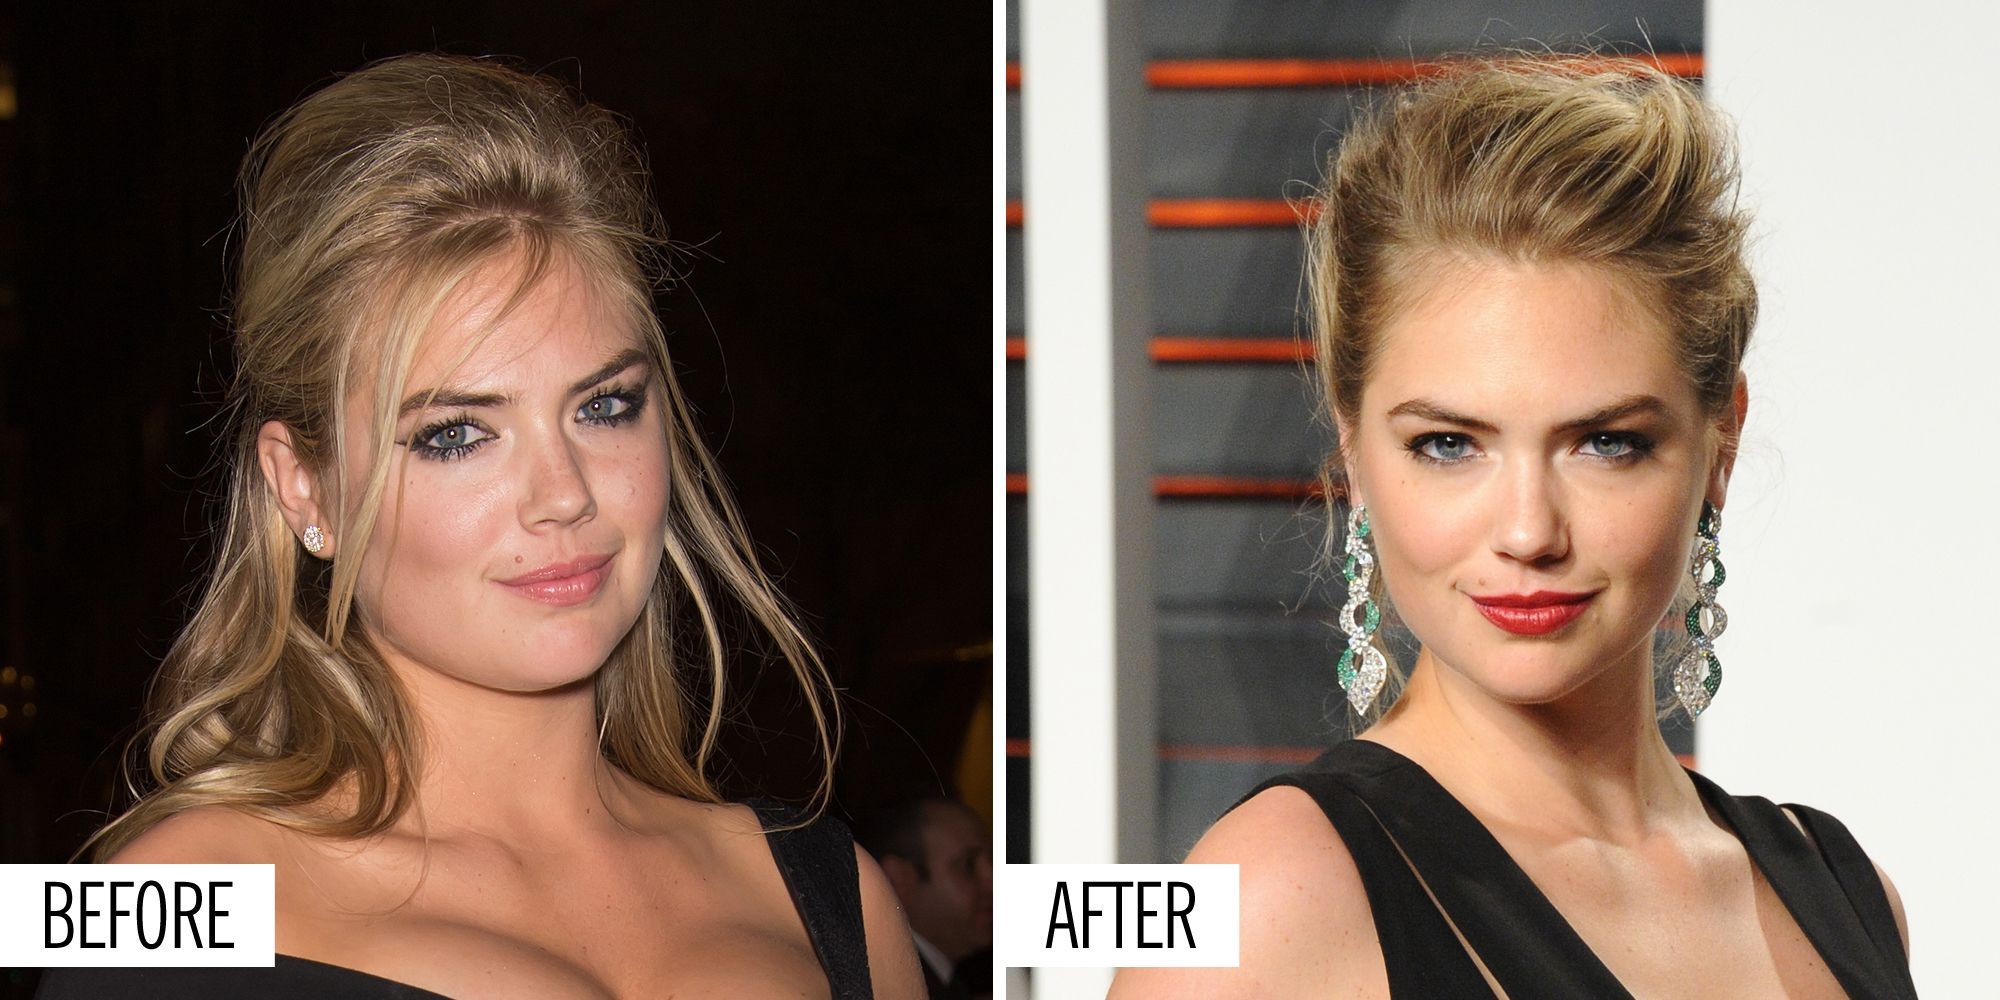 12 Things Kate Upton Did To Get The Body She Has Now